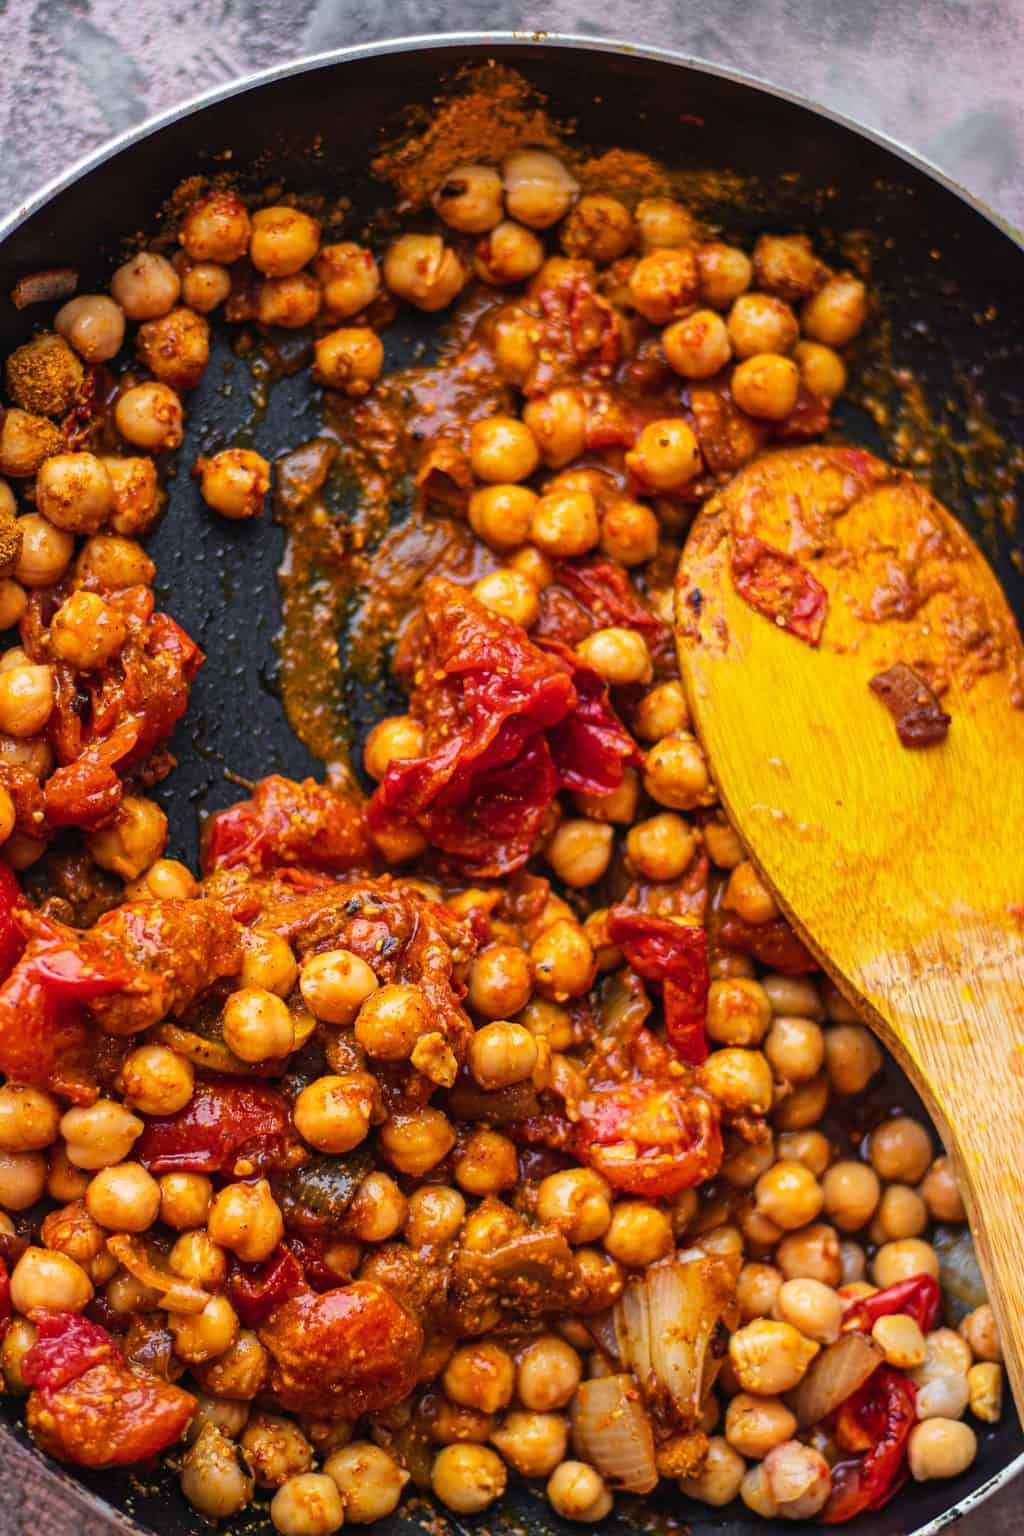 Curried chickpeas in a frying pan